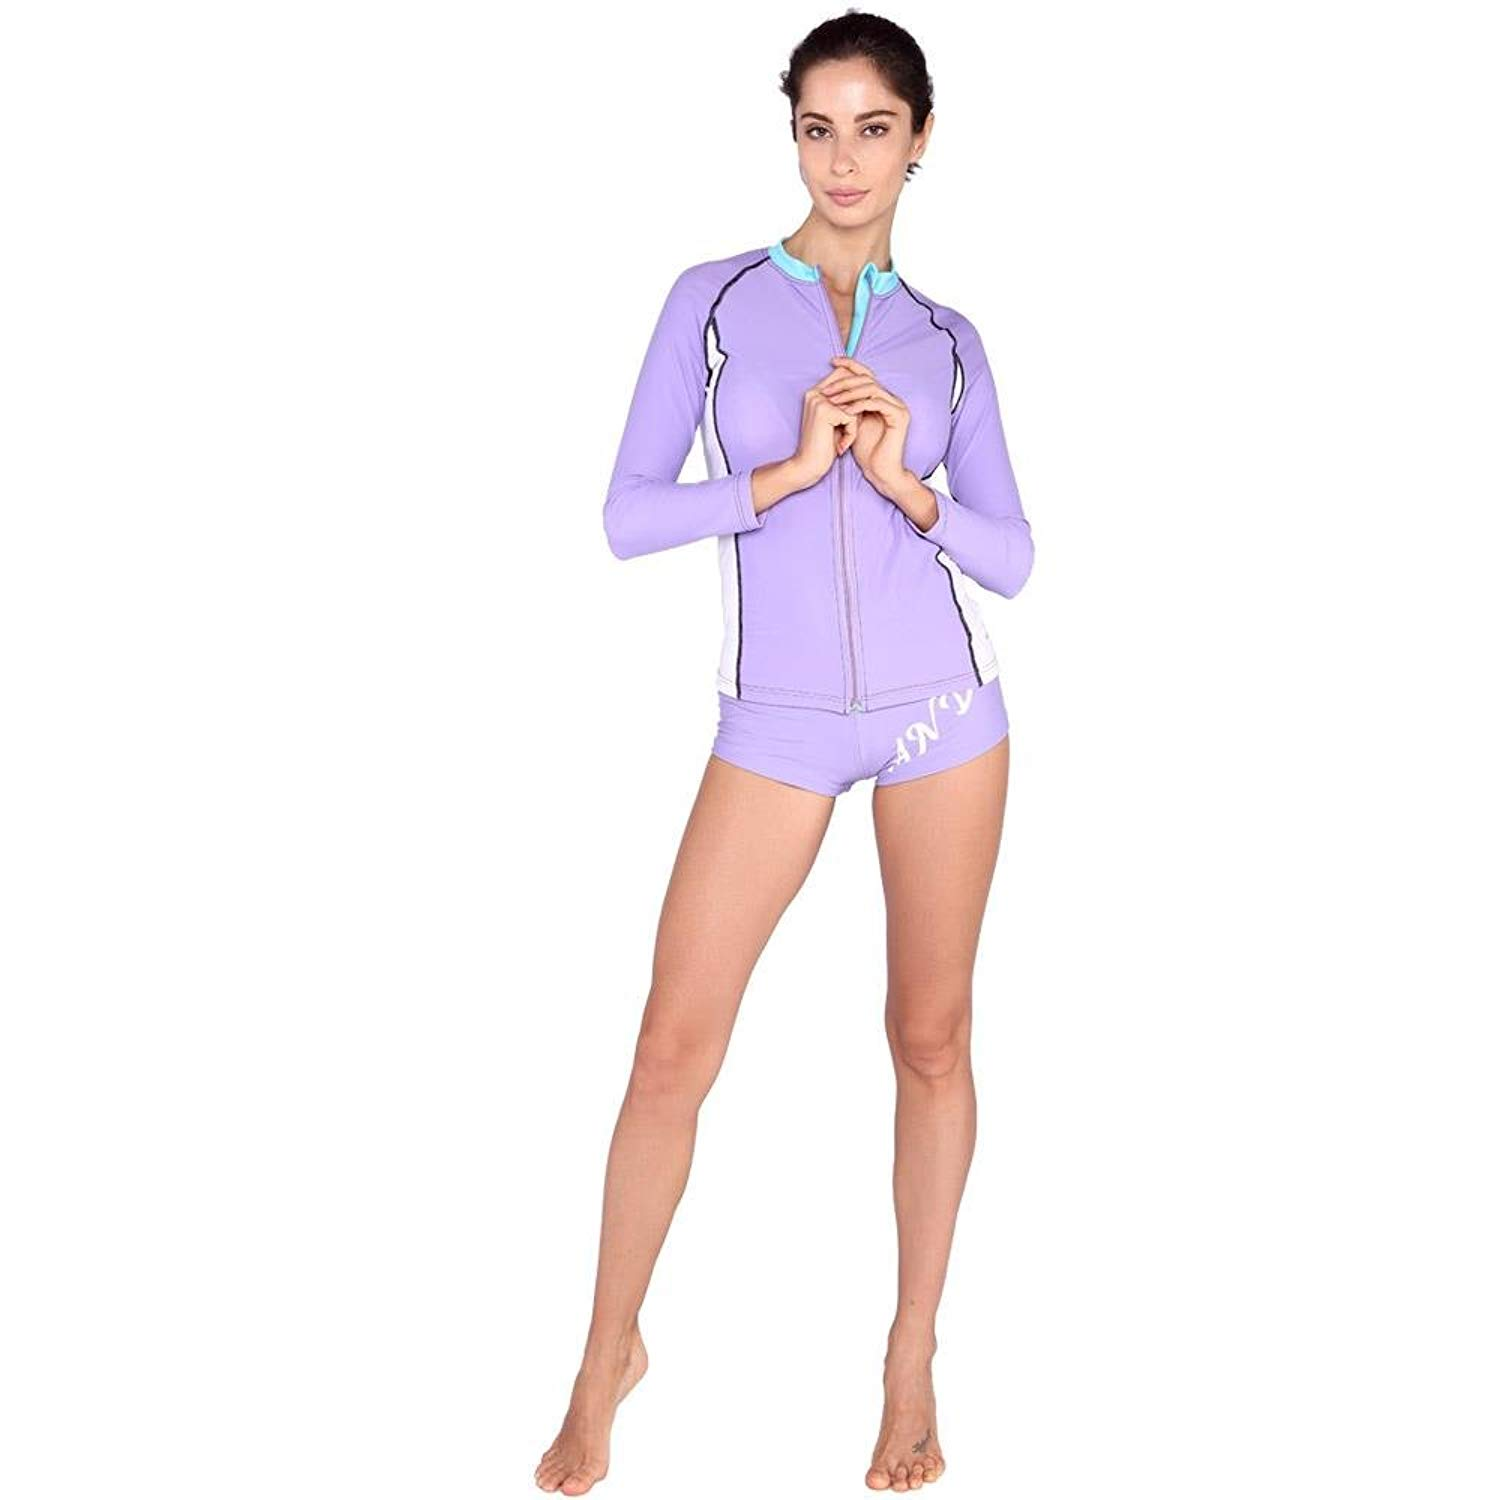 0dbf2a174c Get Quotations · 2 Pcs Women's Swimsuit Rash Guard Long Sleeve Tankini UV  Sun Protection Athletic Swim Wear